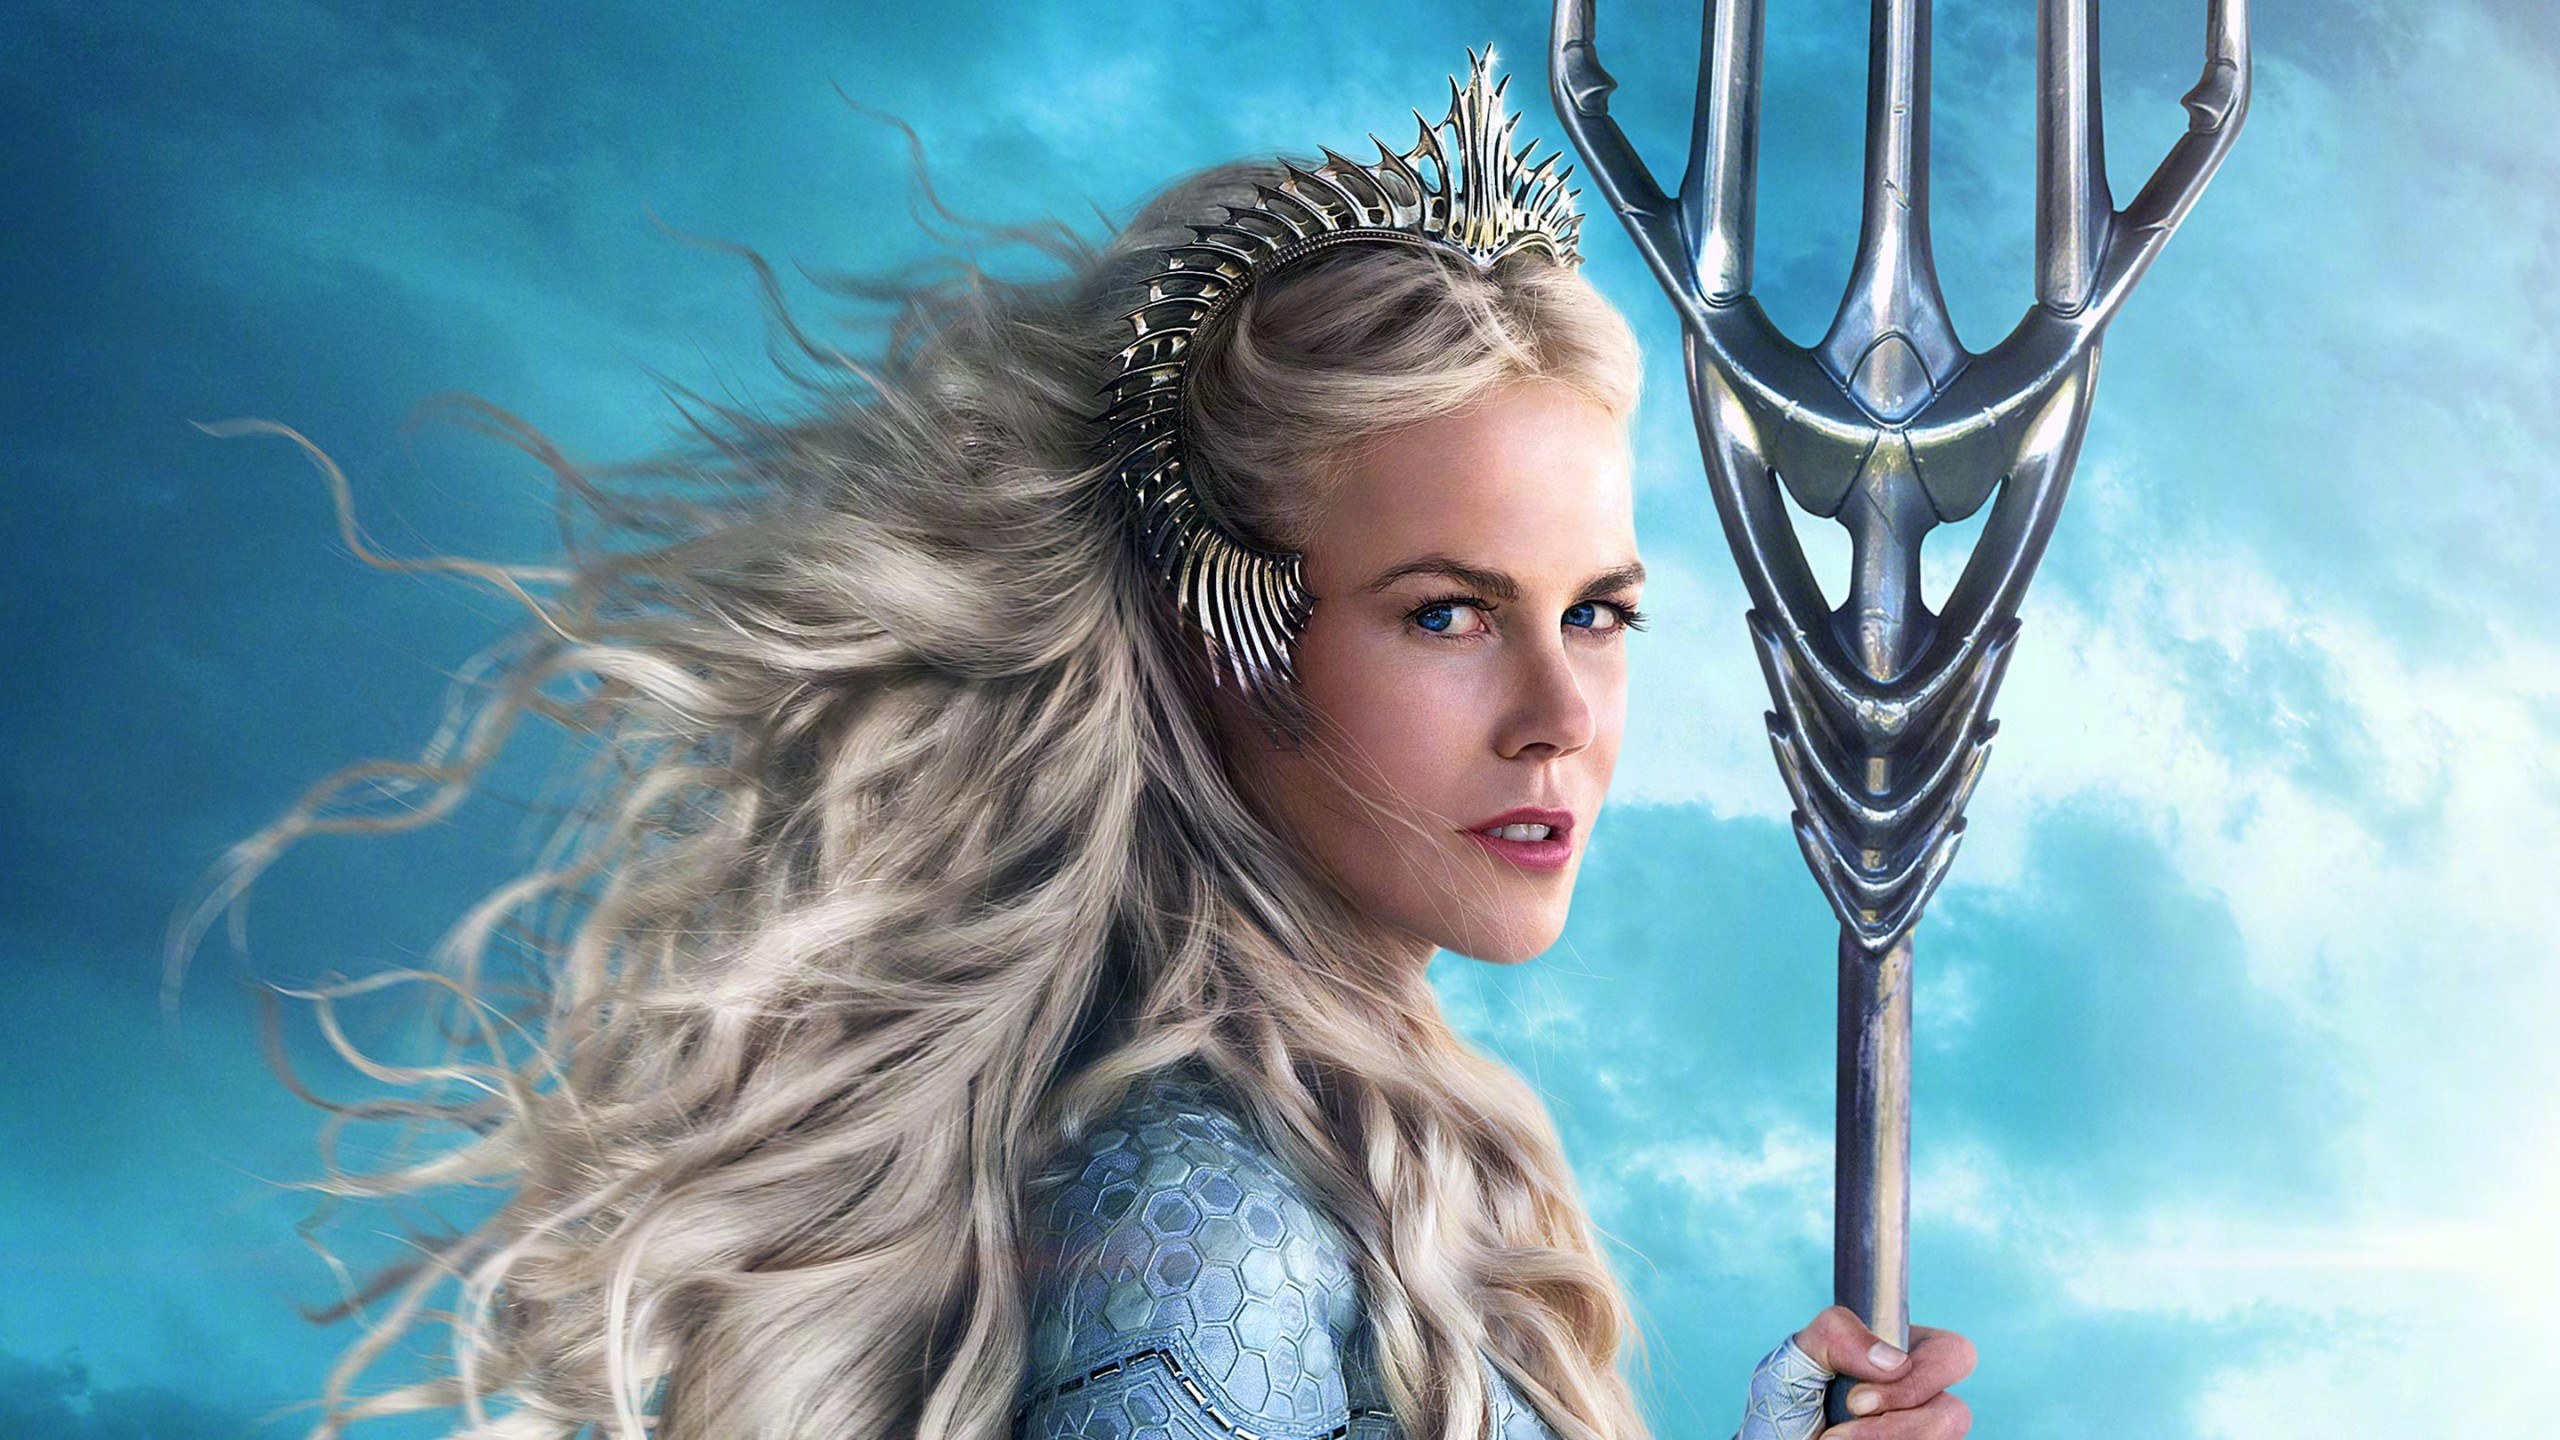 Wonder Woman Cute Wallpaper Nicole Kidman As Queen Atlanna In Aquaman Wallpapers Hd